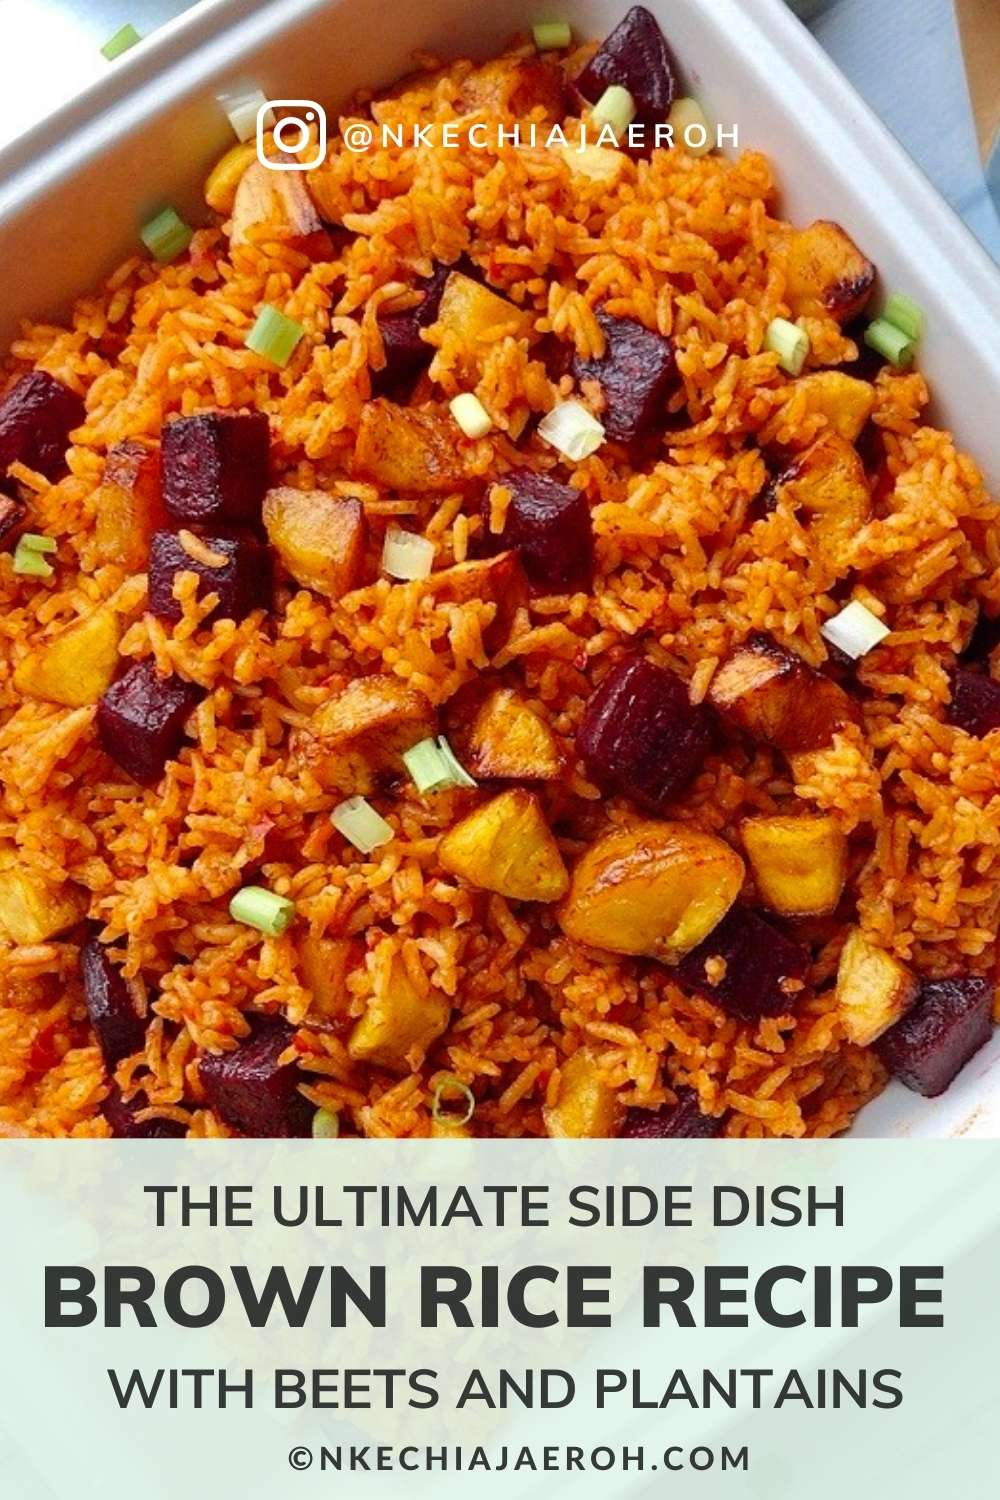 This healthy and insanely delicious brown rice Jollof recipe is vegan, gluten-free, dairy-free, kosher, and the perfect side dish for every occasion. This brown rice recipe cooks very quickly and has a yummy nutty flavor. This dish is a winner, a crowd-pleaser, and hands down the best brown rice recipe! Whether you are looking for a Thanksgiving side dish or Christmas side dish, this recipe is just right and perfect!